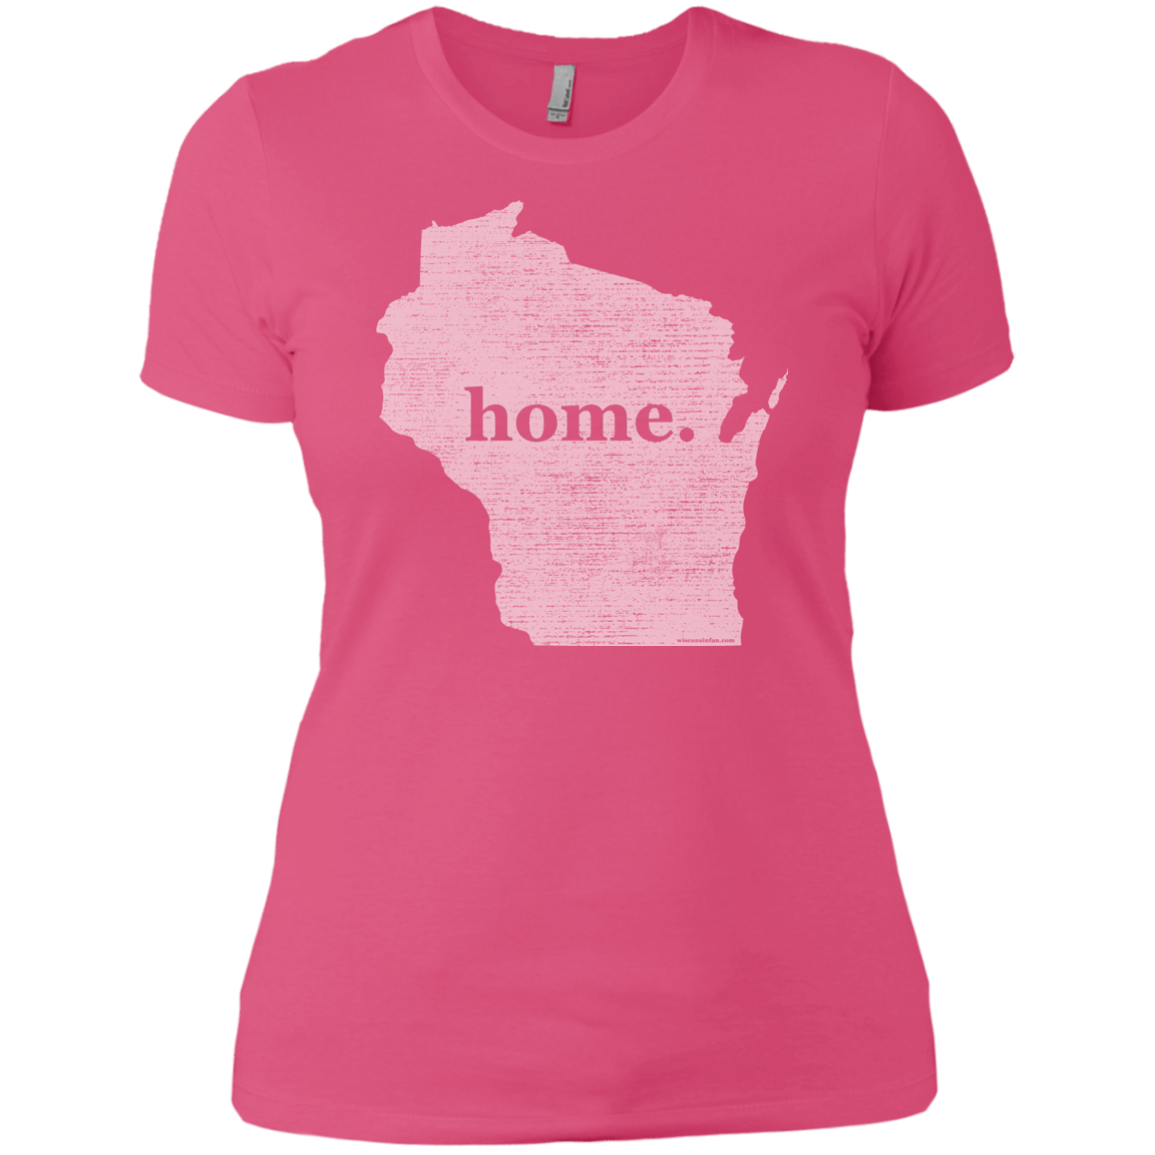 best wi home t tshirts